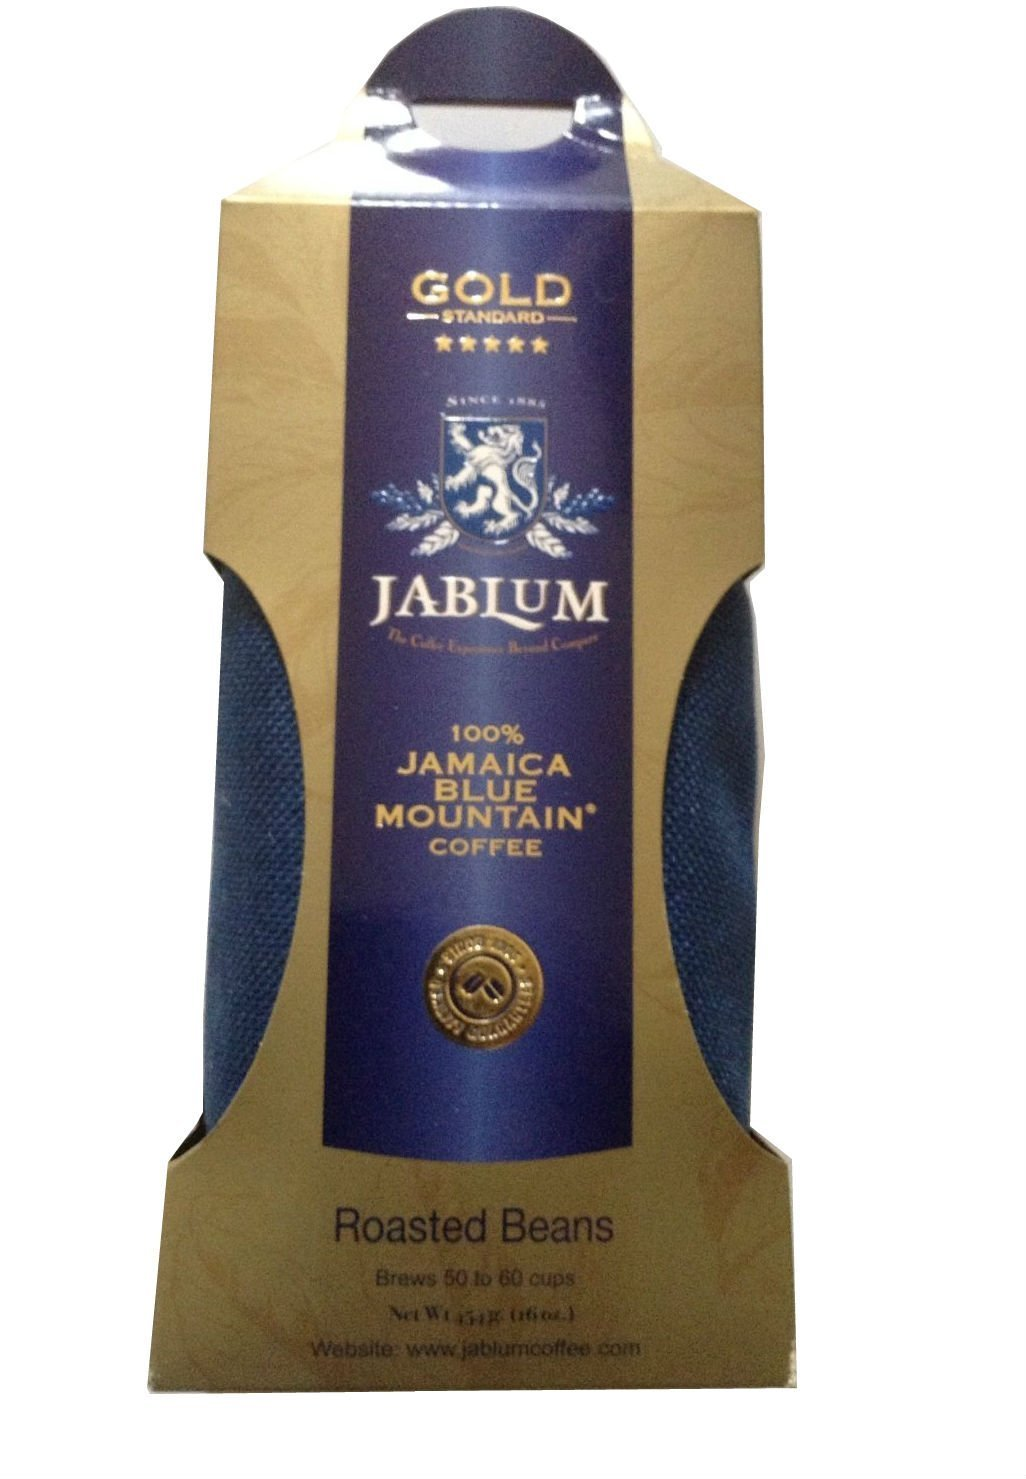 Jamaica Blue Mountain Coffee Beans - Jablum Gold Standard (16oz) by JABLUM